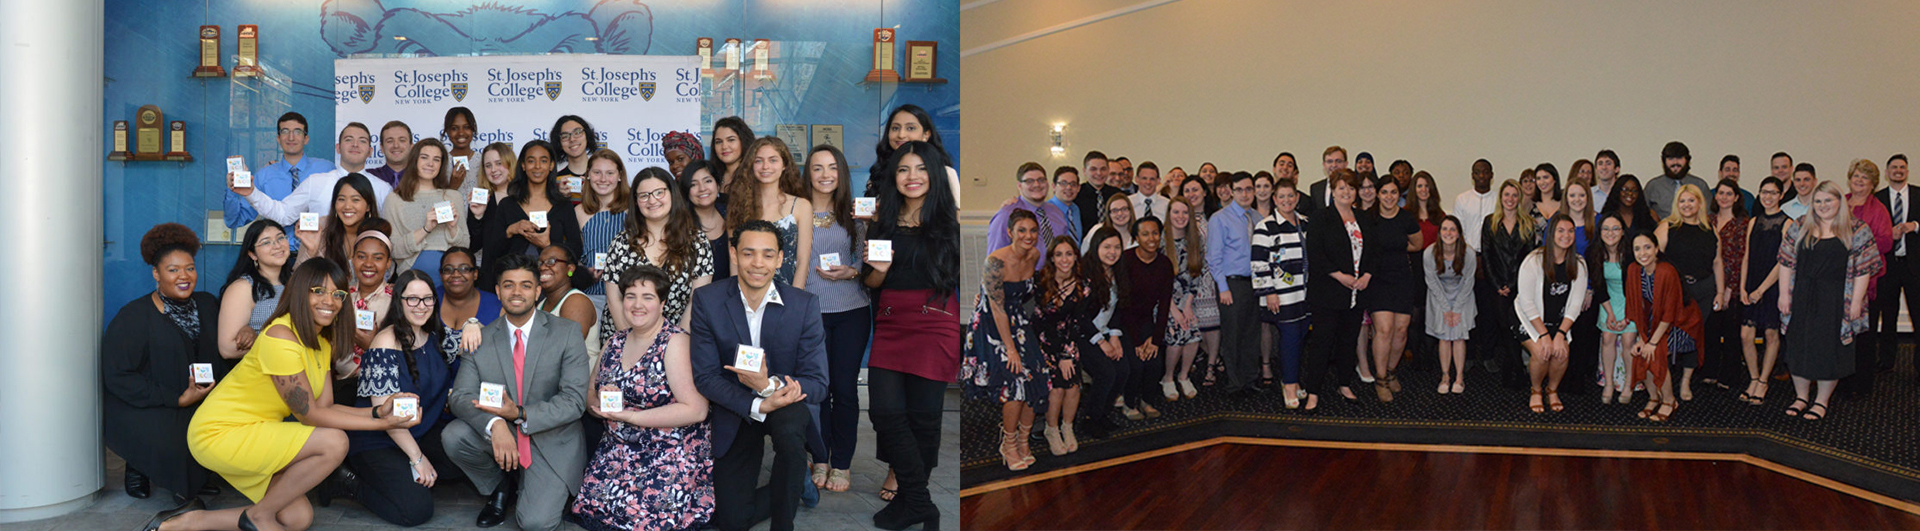 Student leaders and seniors at both campuses' leadership luncheons in 2018.